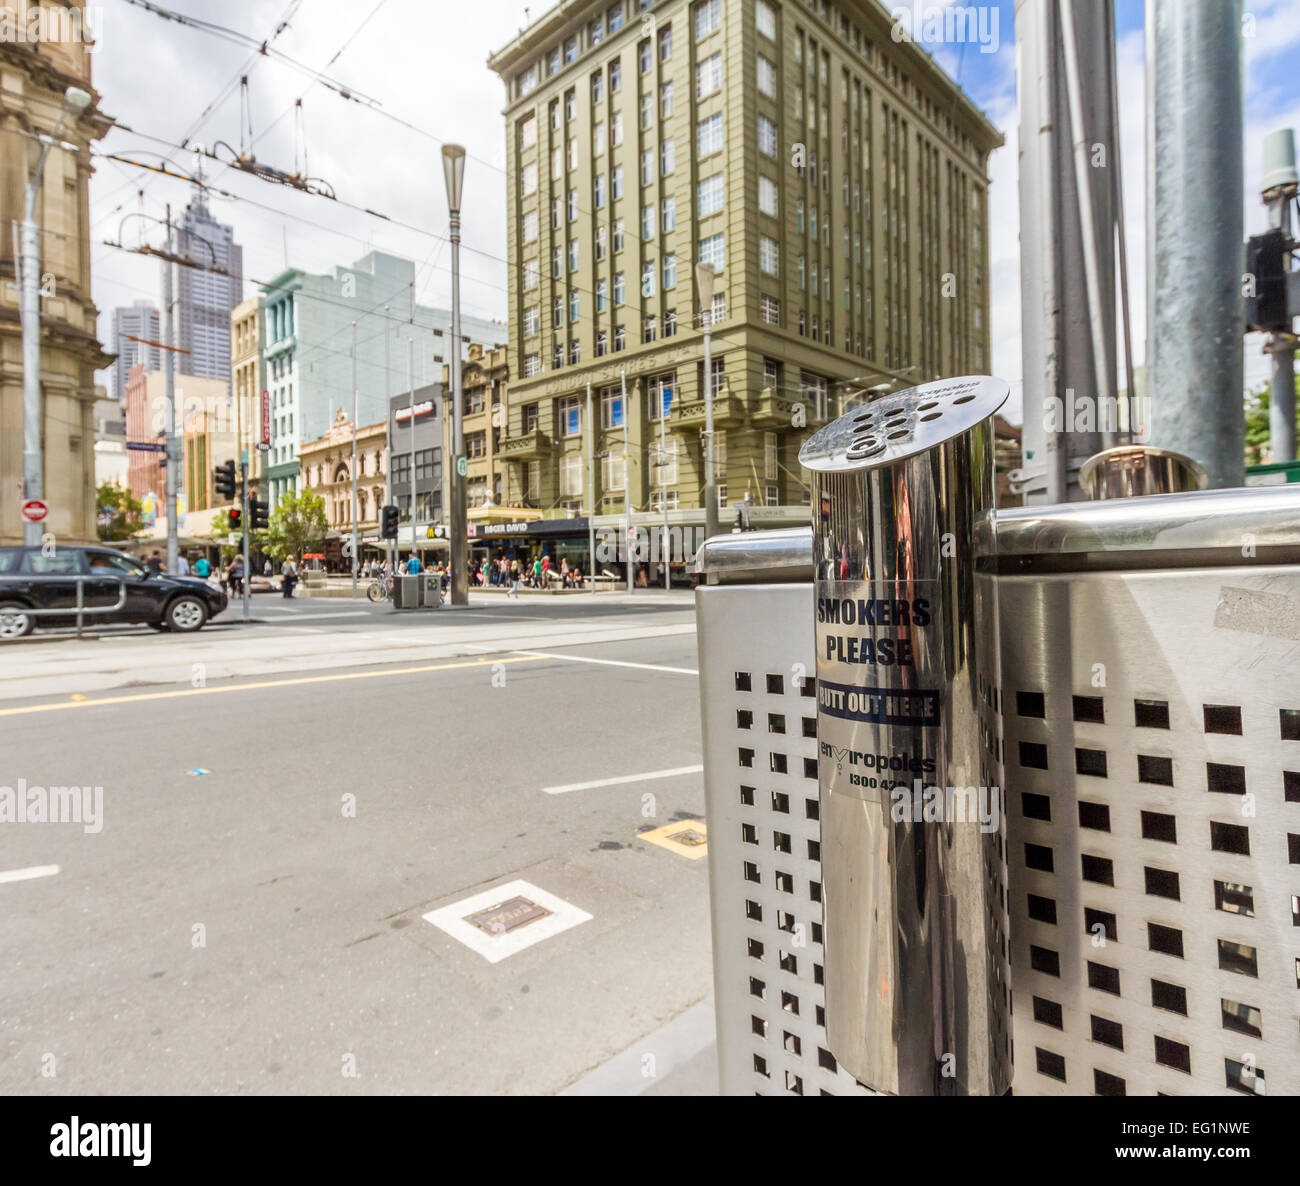 Smoking receptacle in Melbourne. - Stock Image